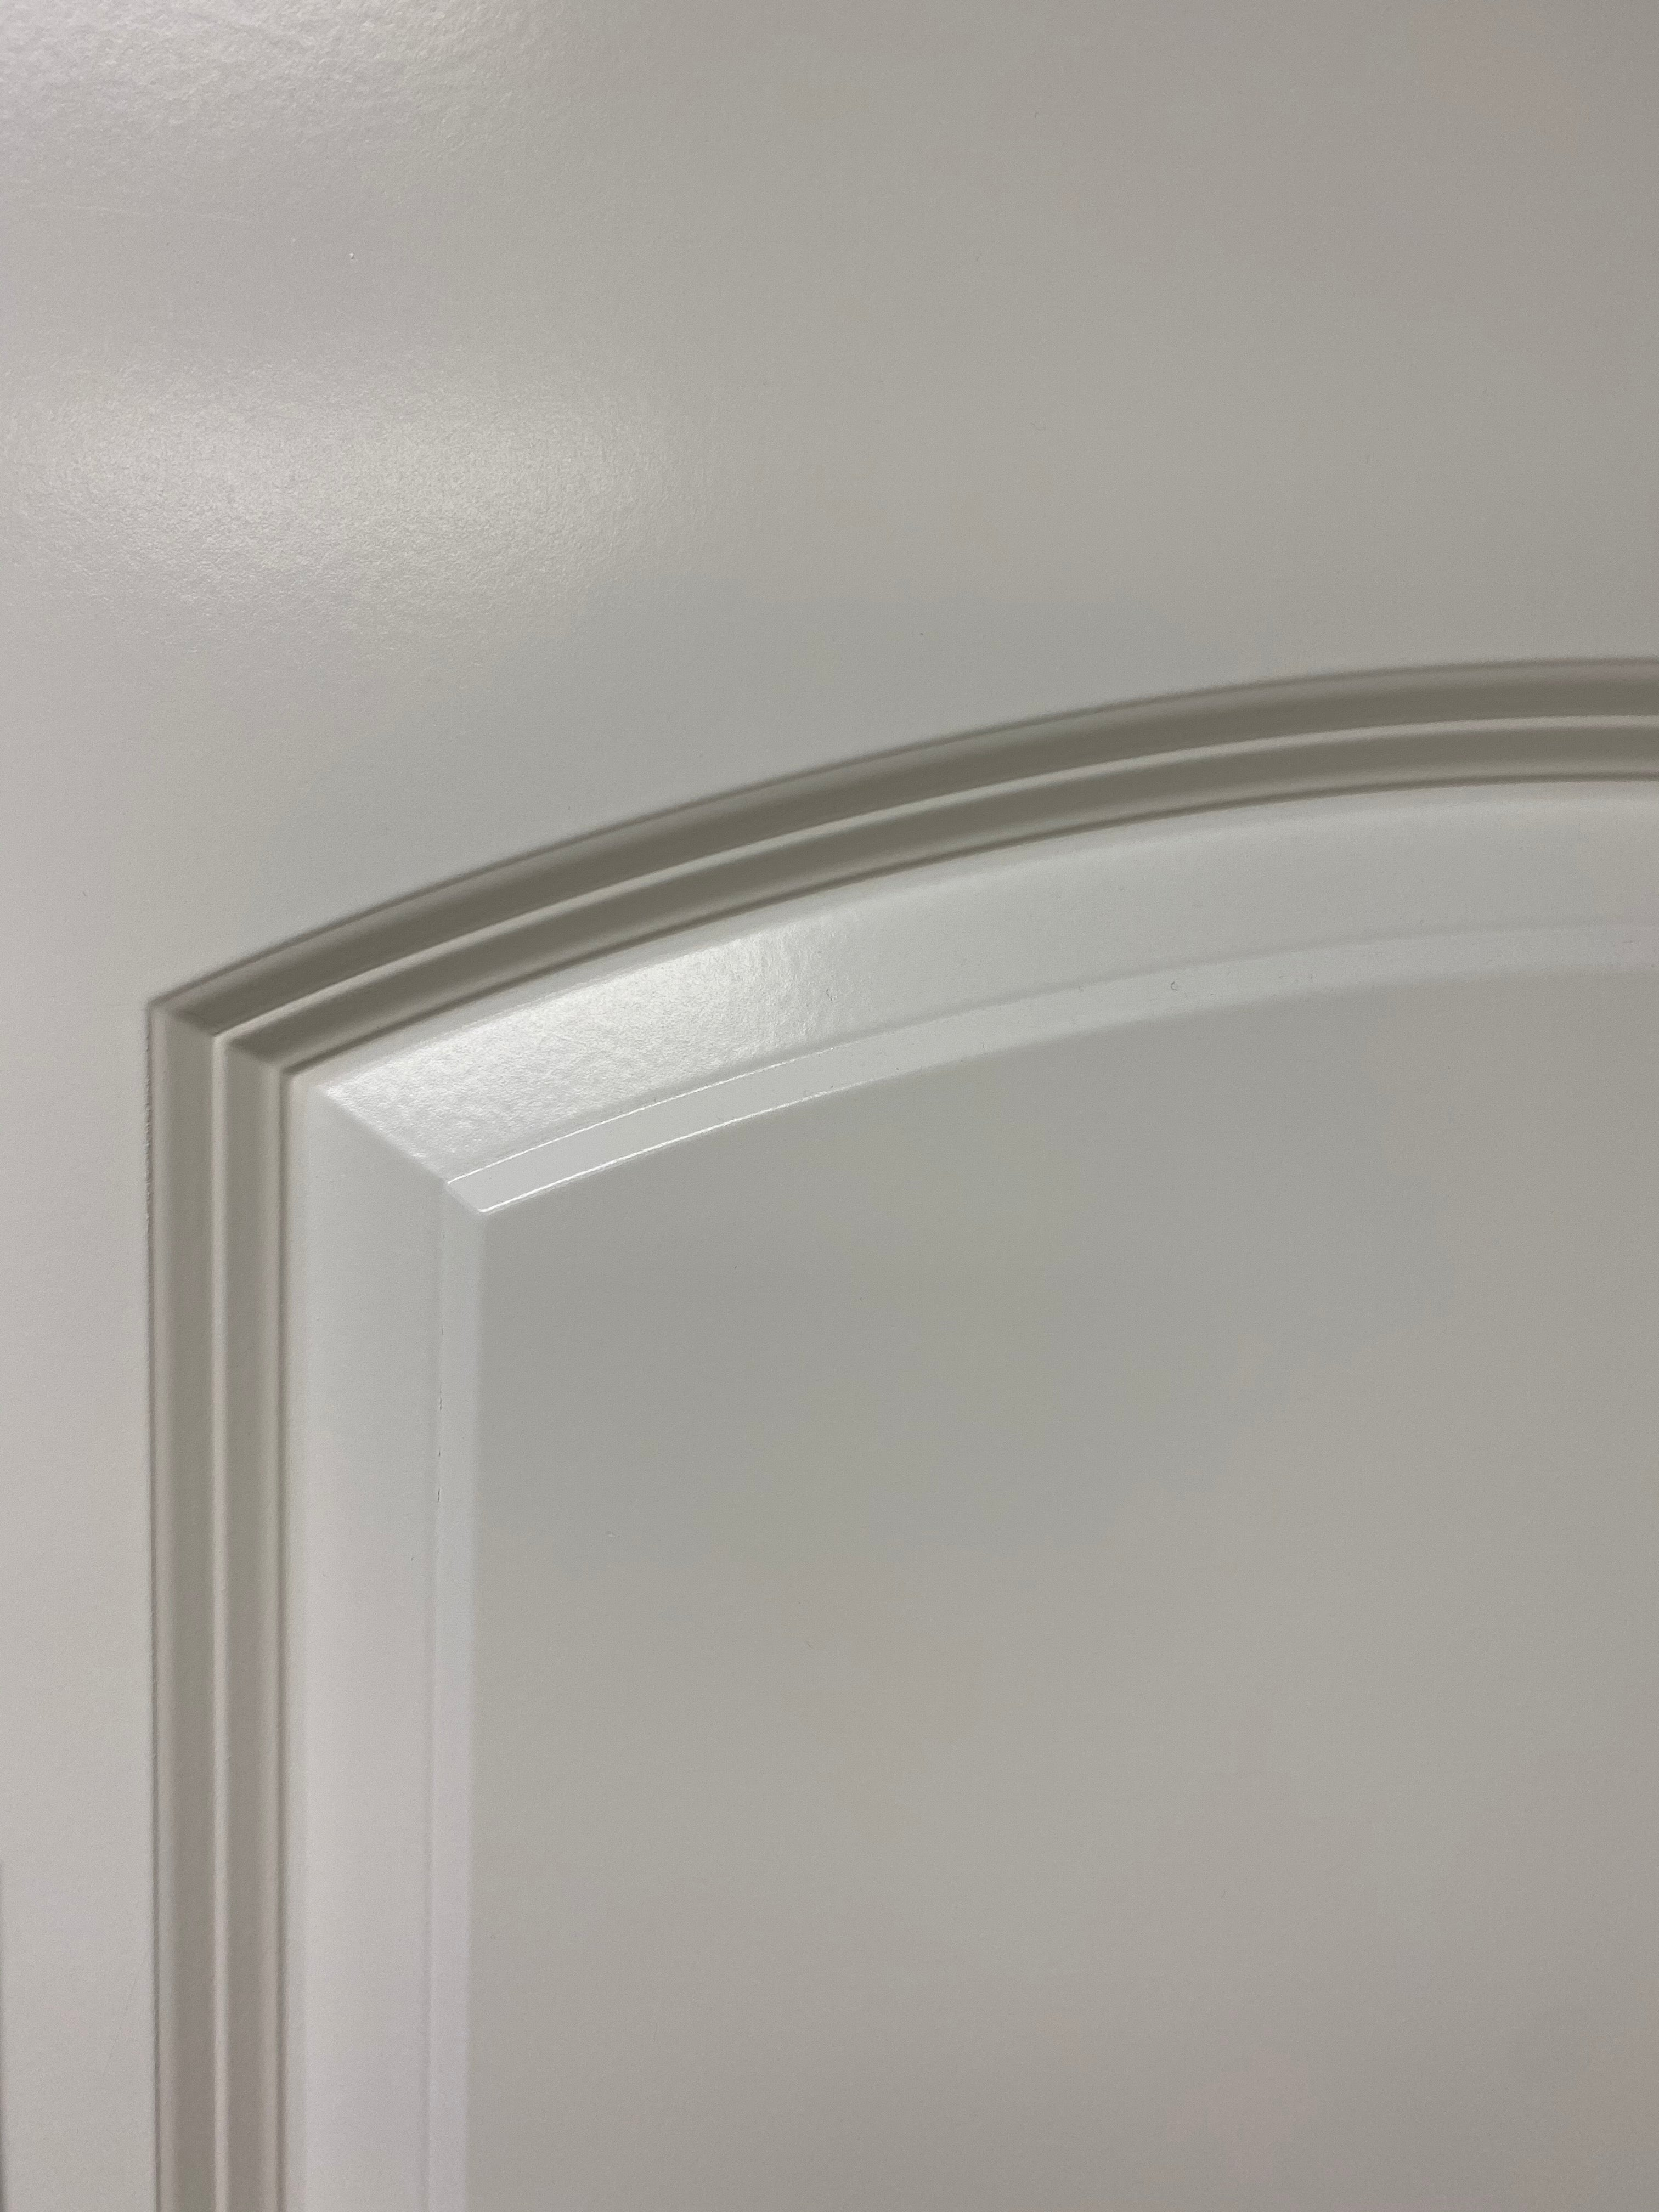 "2 Panel Arch Caiman Primed 8'-0"" (96"")"